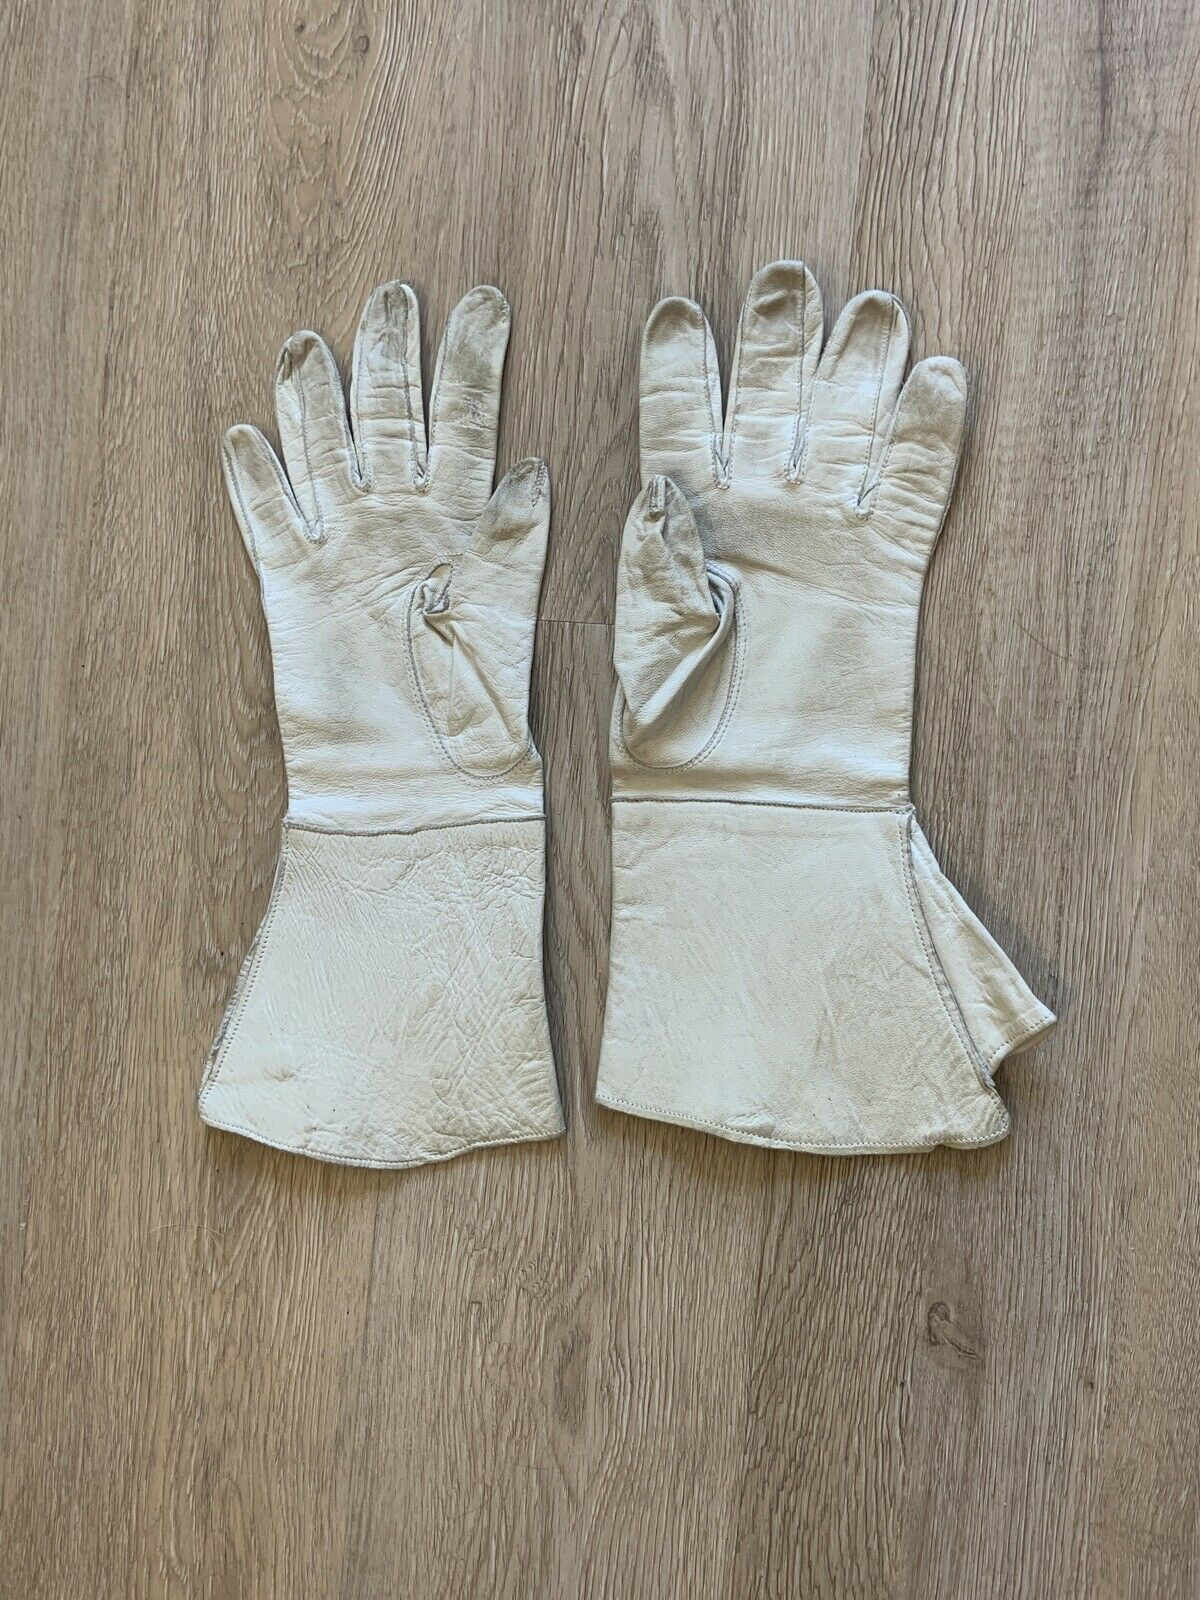 Vintage Early 20th Century French GAUNTLET GLOVES… - image 1